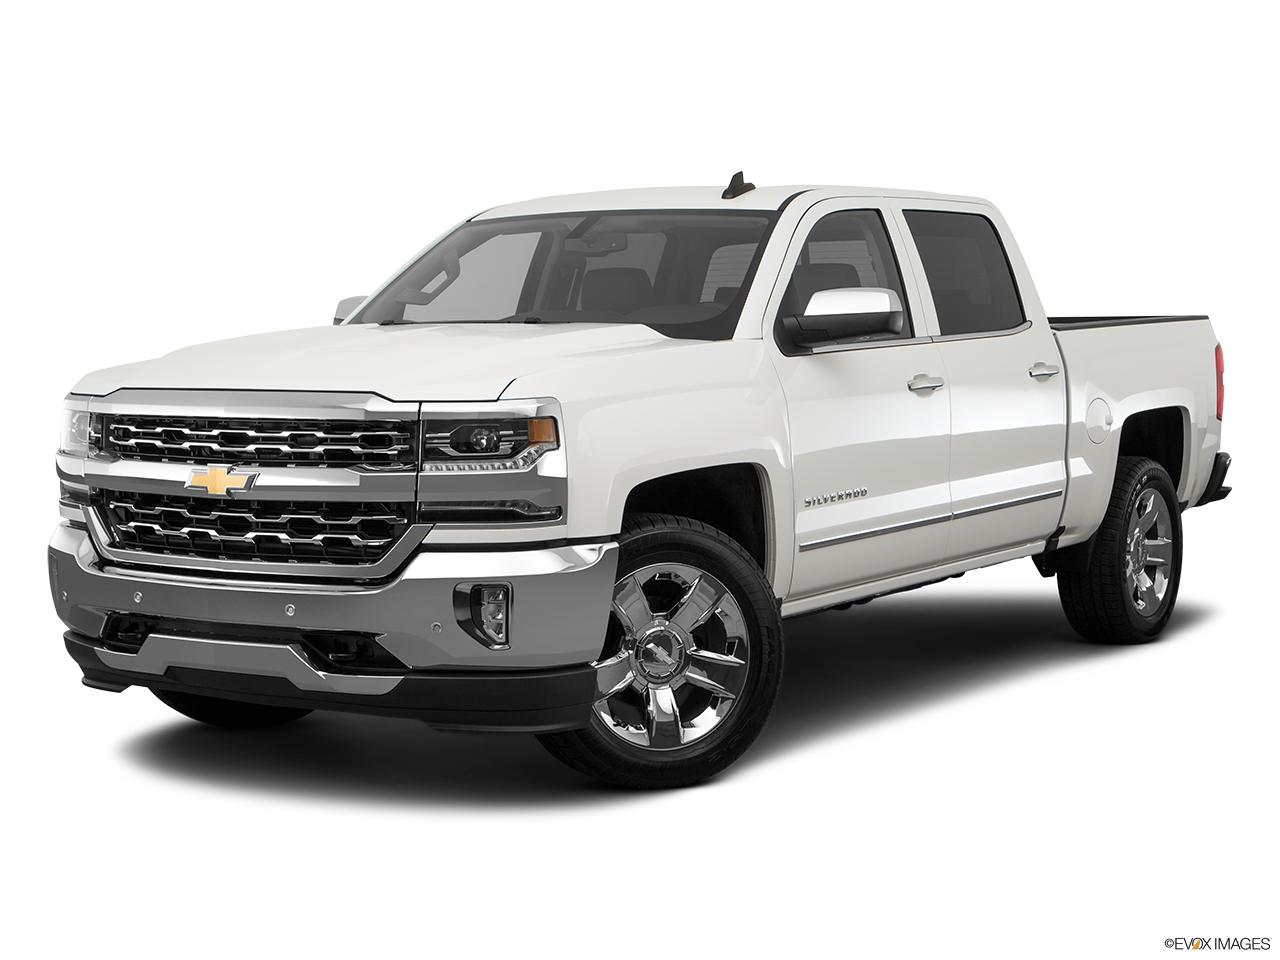 2017 chevrolet silverado 1500 dealer near houston monument chevrolet. Black Bedroom Furniture Sets. Home Design Ideas